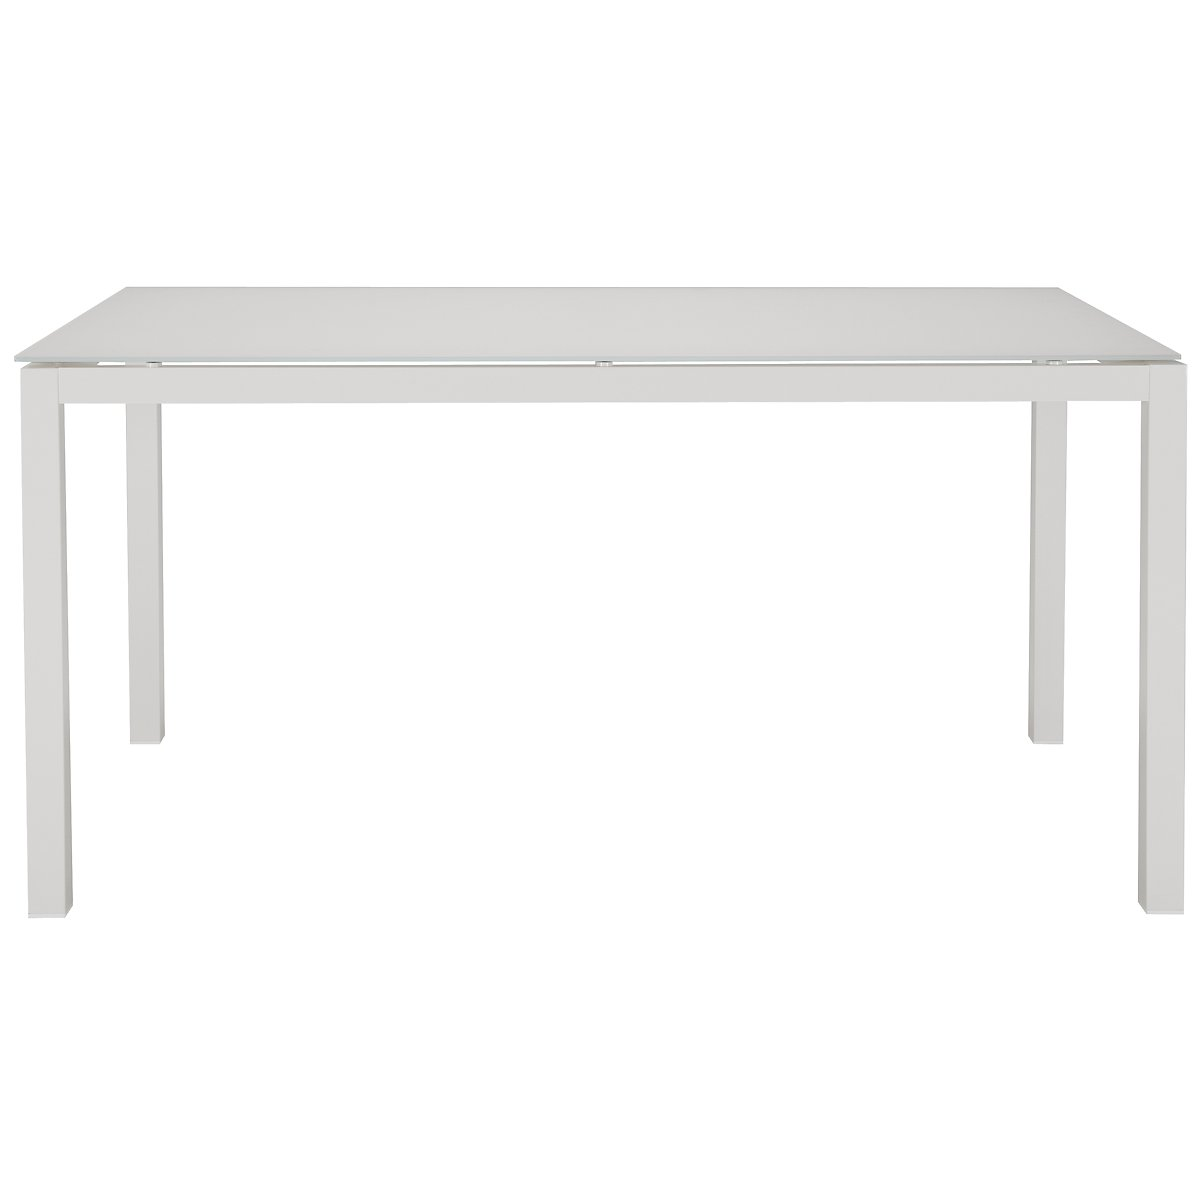 "Lisbon White 60"" Rectangular Table"